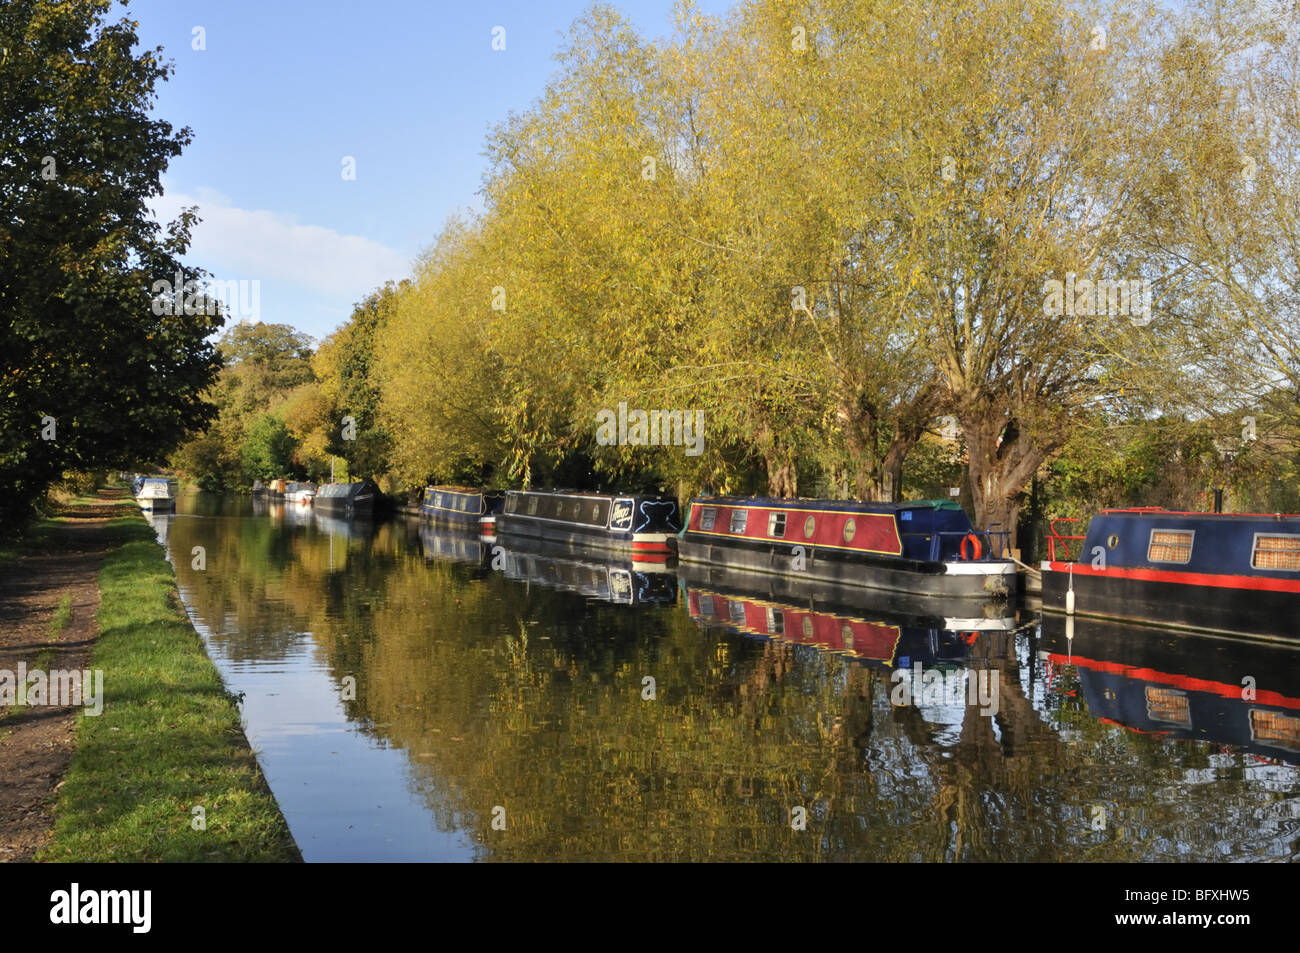 Herbstszenen am Grand Union Canal in Hertfordshire, Großbritannien. Stockbild